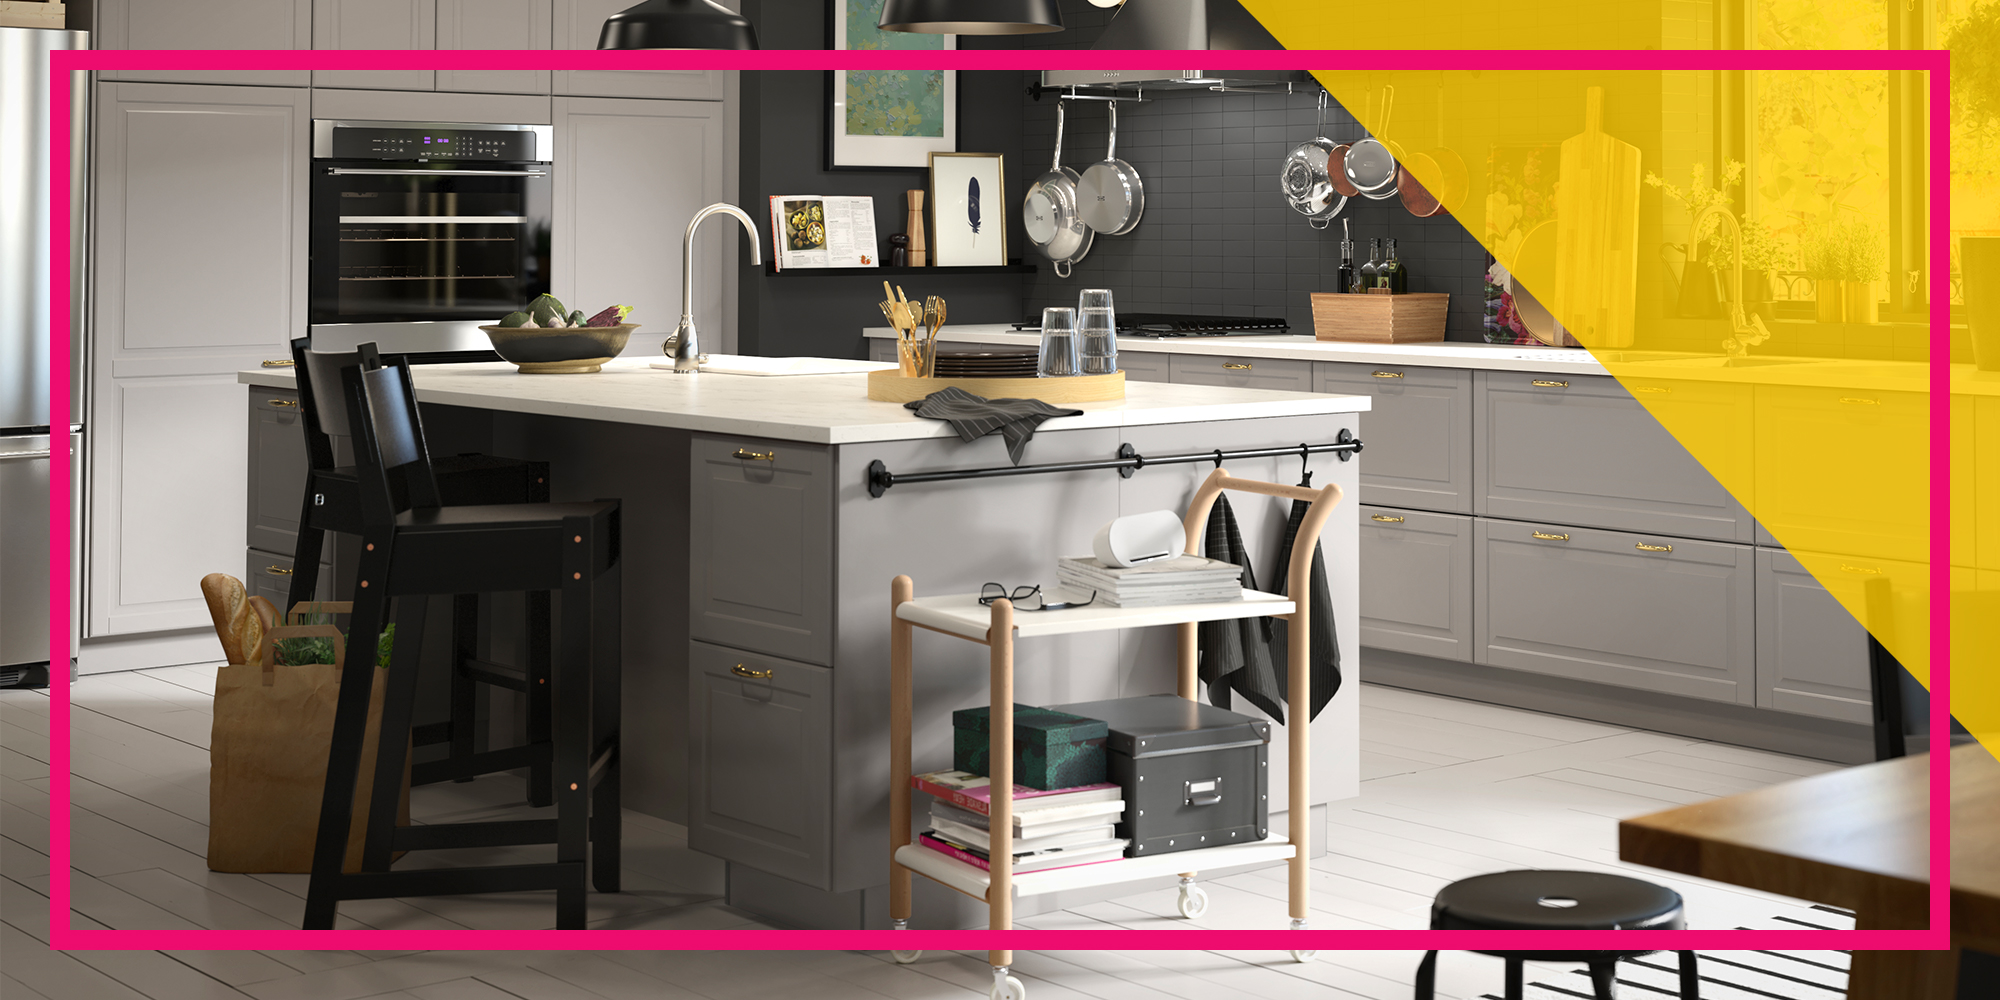 Ikea Kitchen Inspiration Your Guide To Installing A Kitchen